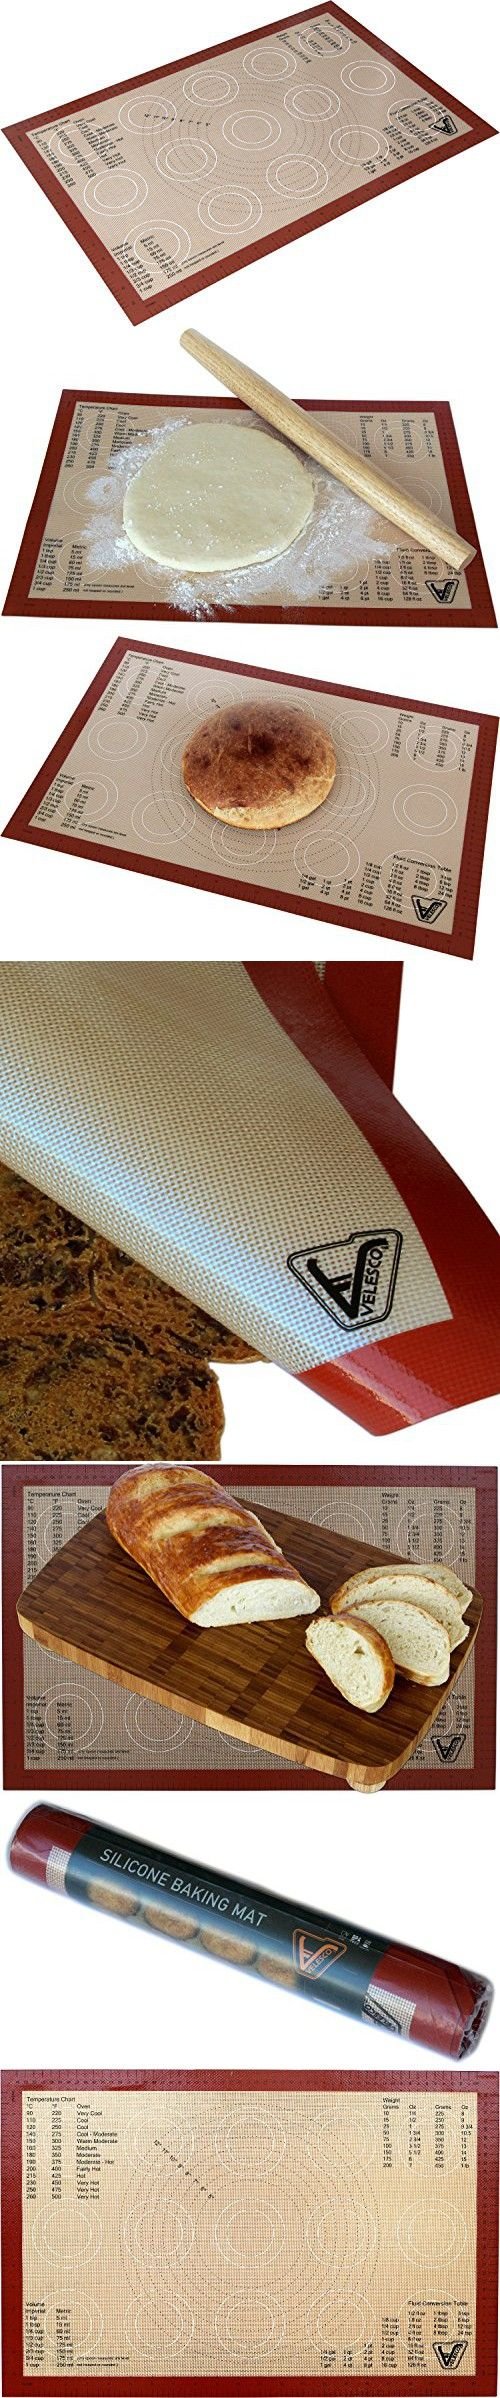 "Silicone Baking Mat - Large Size Sheet (Thick & Large 15"" x 23"") - Non Stick Silicon Liner for Large Bake Pans & Trays - Rolling, Macaron/Pastry/Cookie/Bun/Bread Making - Professional Grade Nonstick"